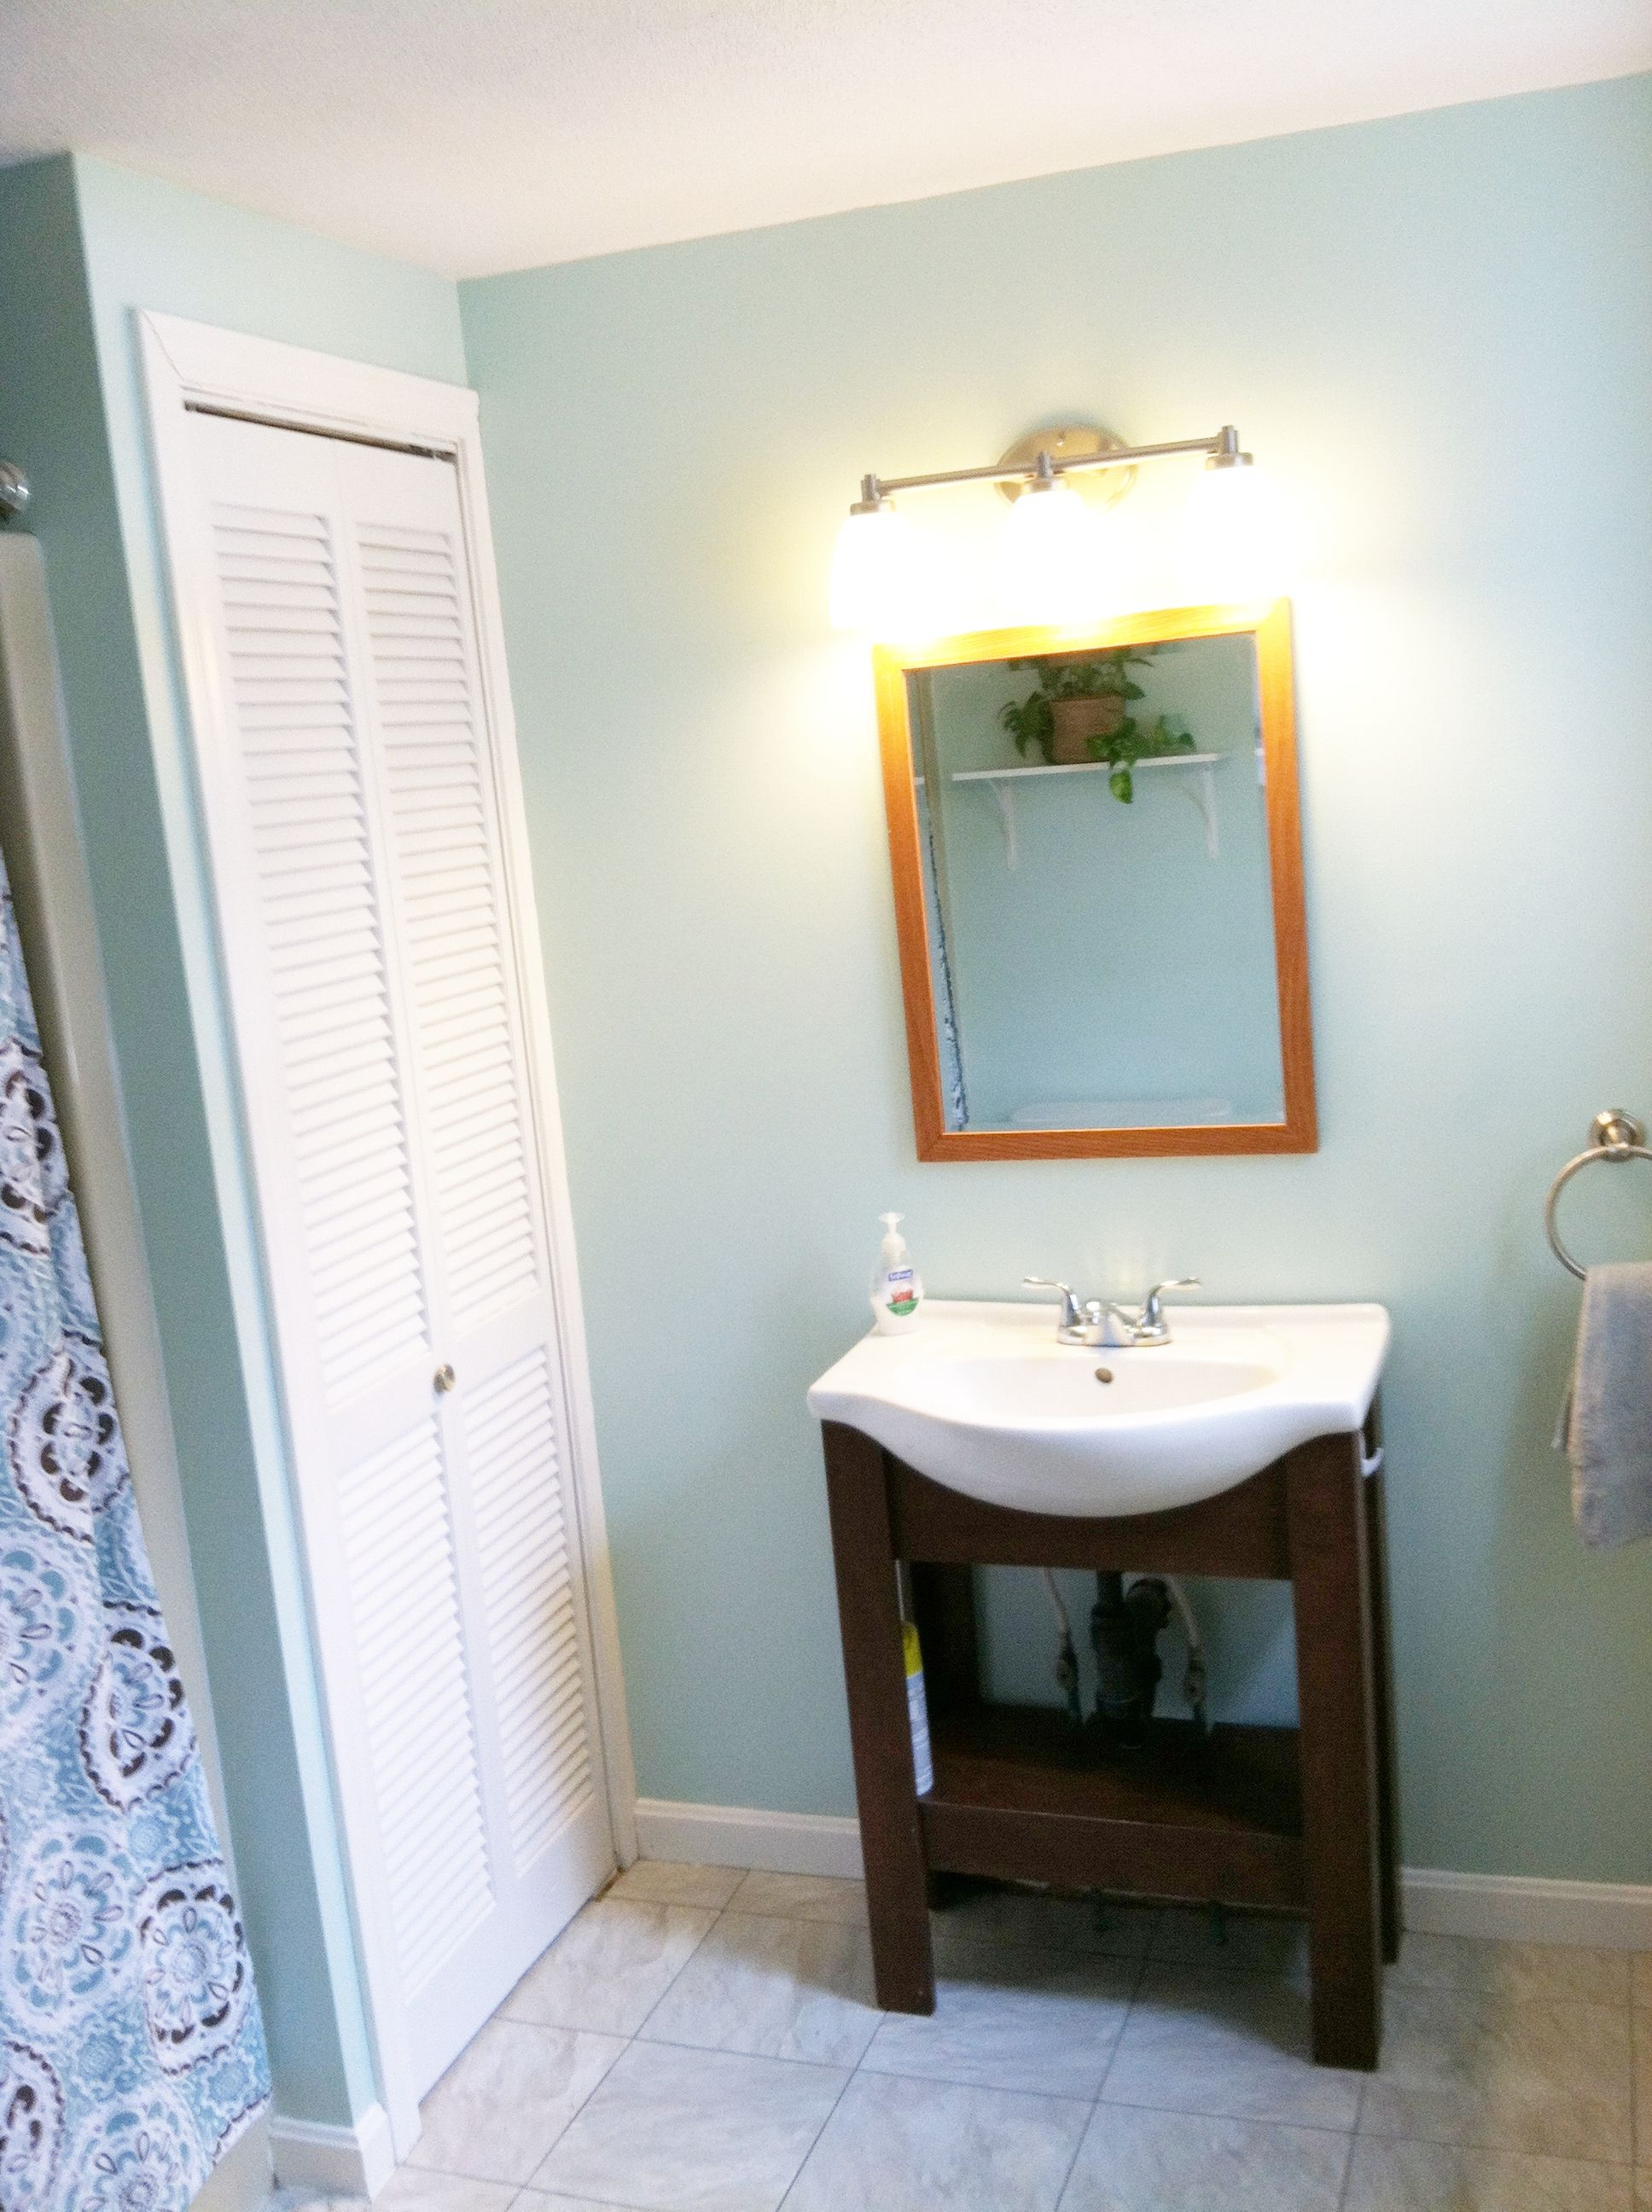 Lowes Paint Colors For Bedrooms Valspar Smooth Pebble From Lowes For The Home Pinterest